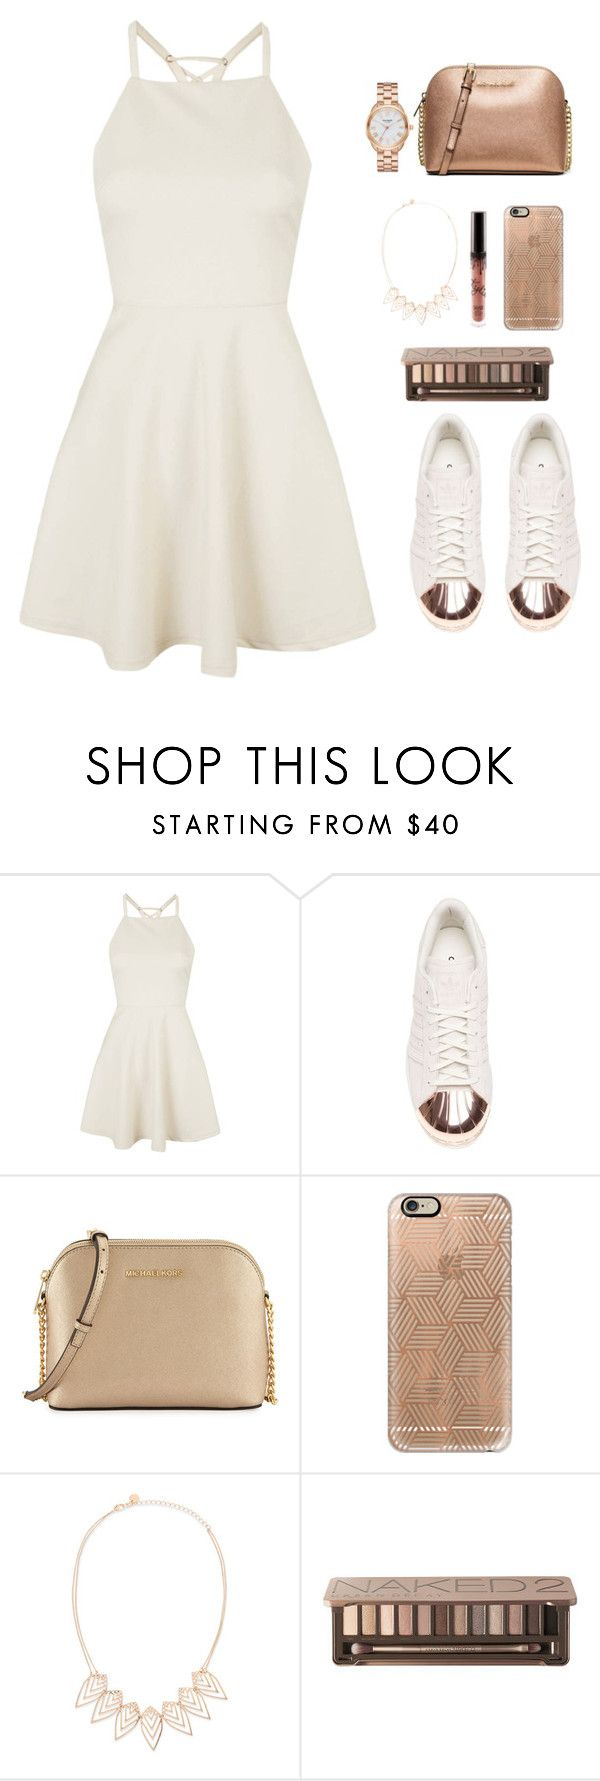 """""""Rose gold and white summer outfit"""" by emmeleialouca ❤ liked on Polyvore featuring Topshop, adidas, MICHAEL Michael Kors, Casetify, Jules Smith, Urban Decay and Kate Spade"""